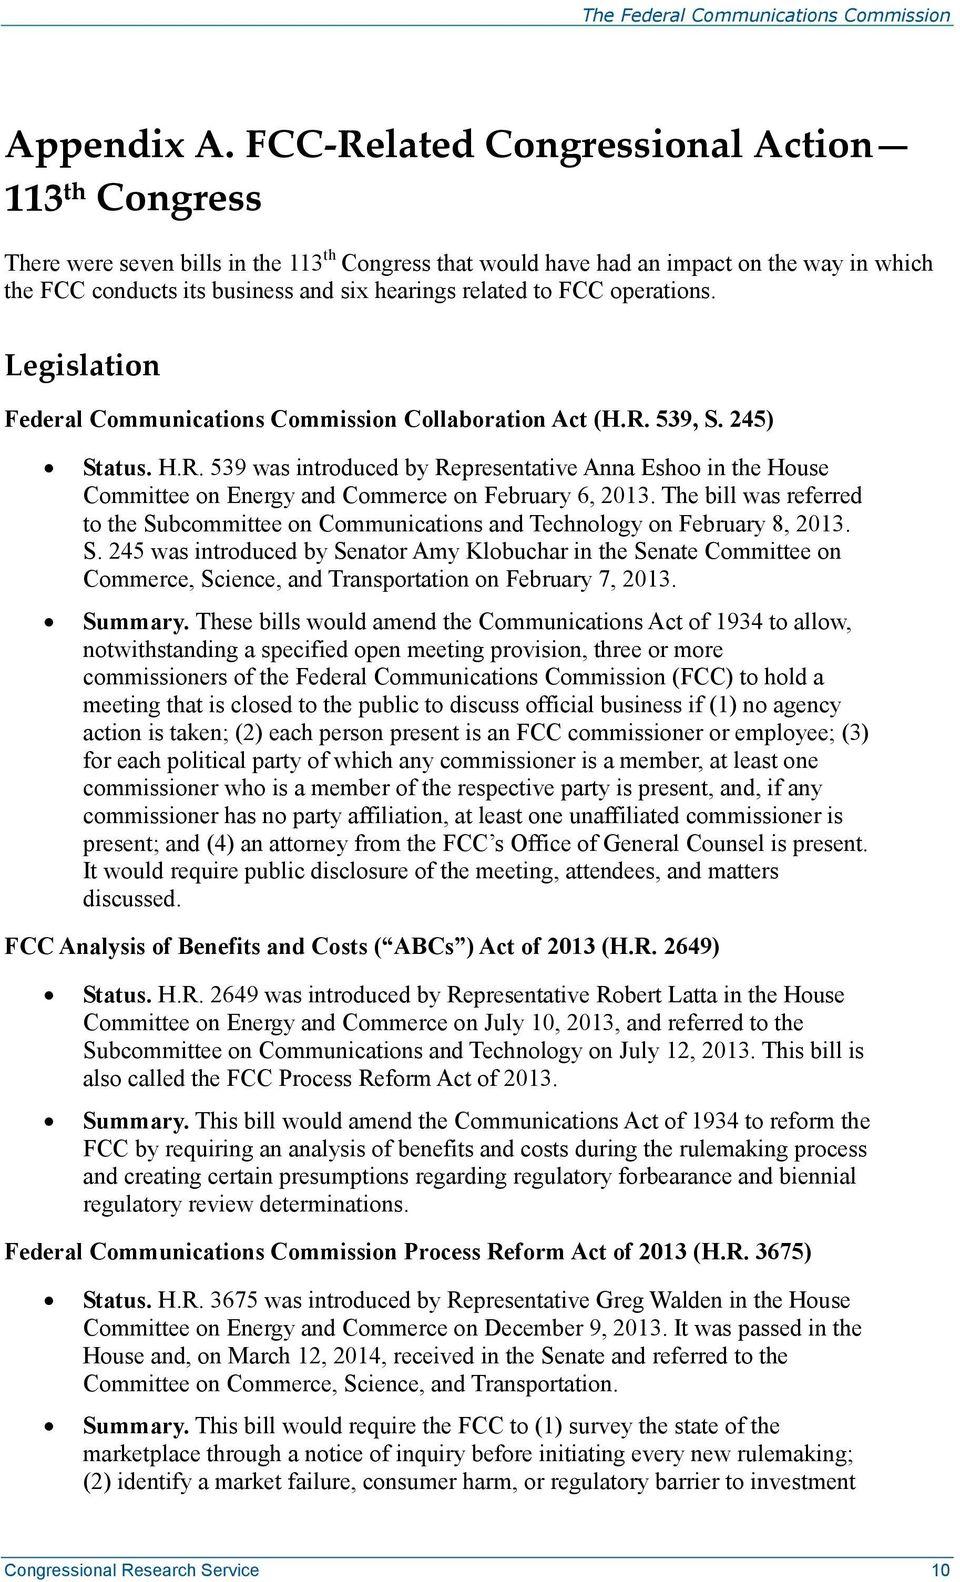 to FCC operations. Legislation Federal Communications Commission Collaboration Act (H.R.